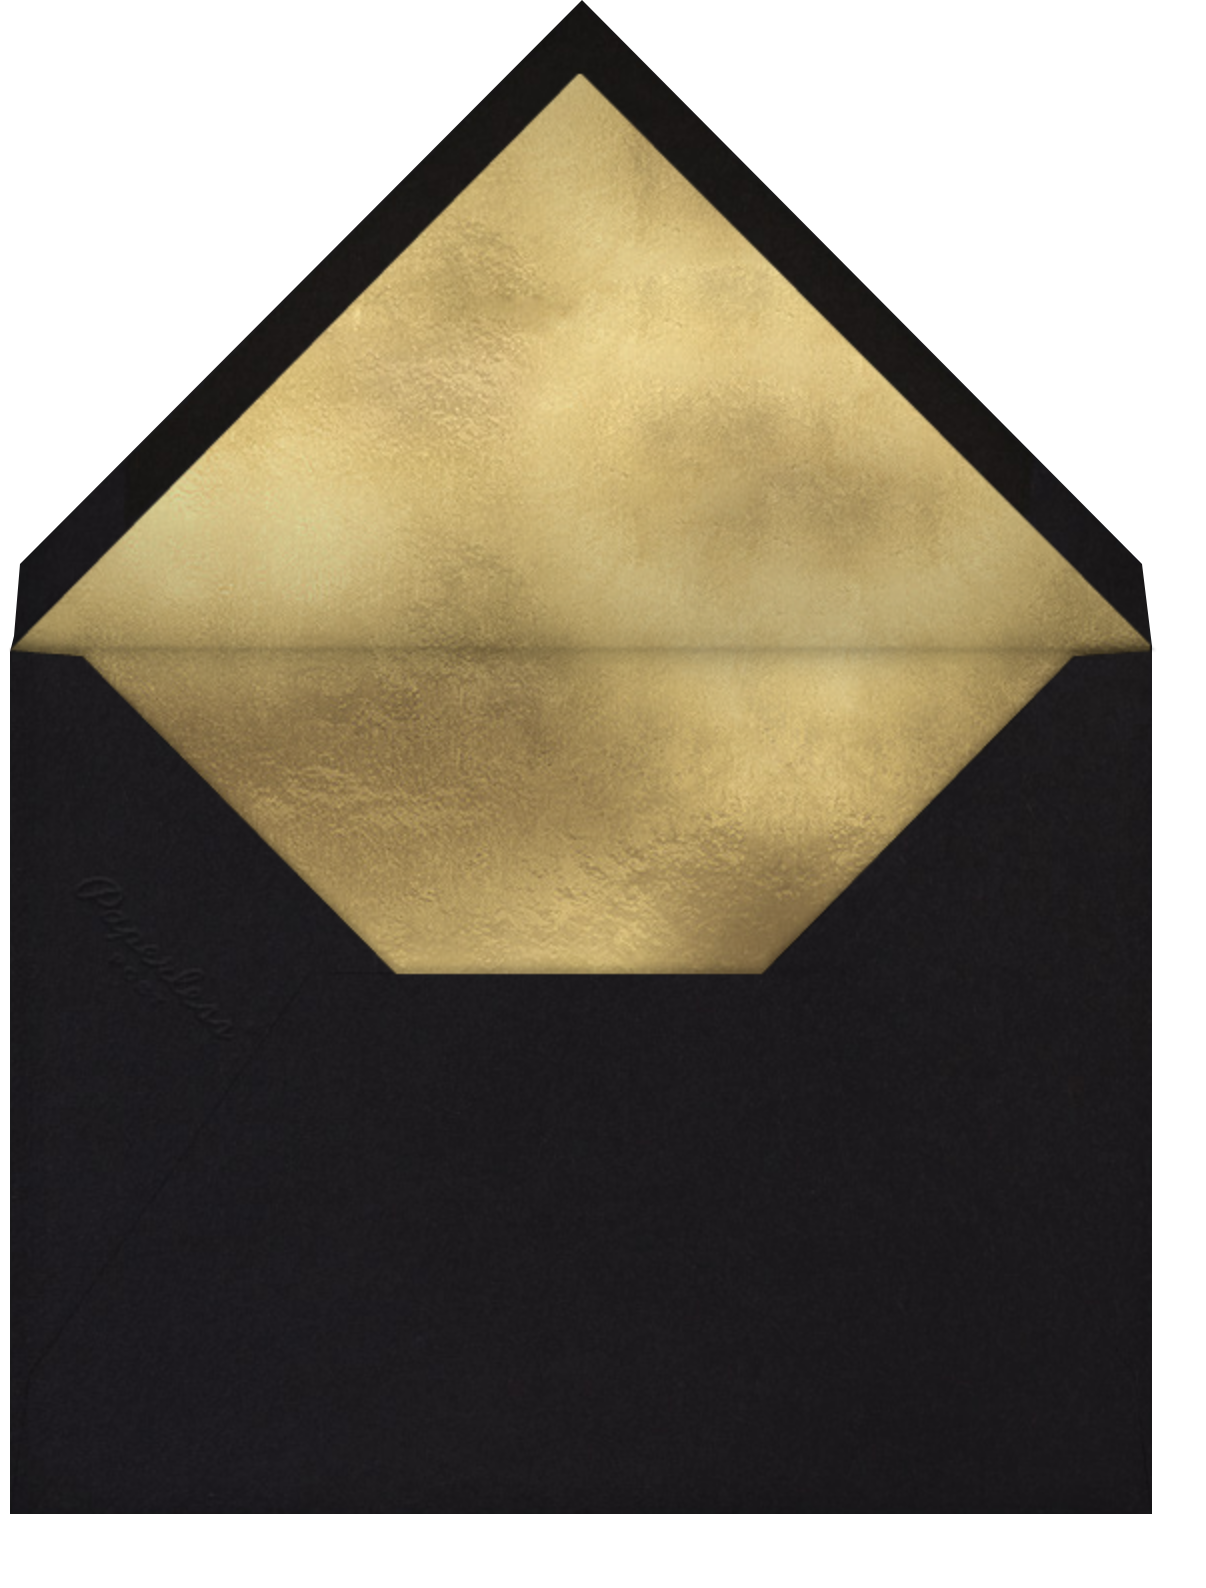 Up in the Air - Metallic - Mr. Boddington's Studio - New Year's Eve - envelope back